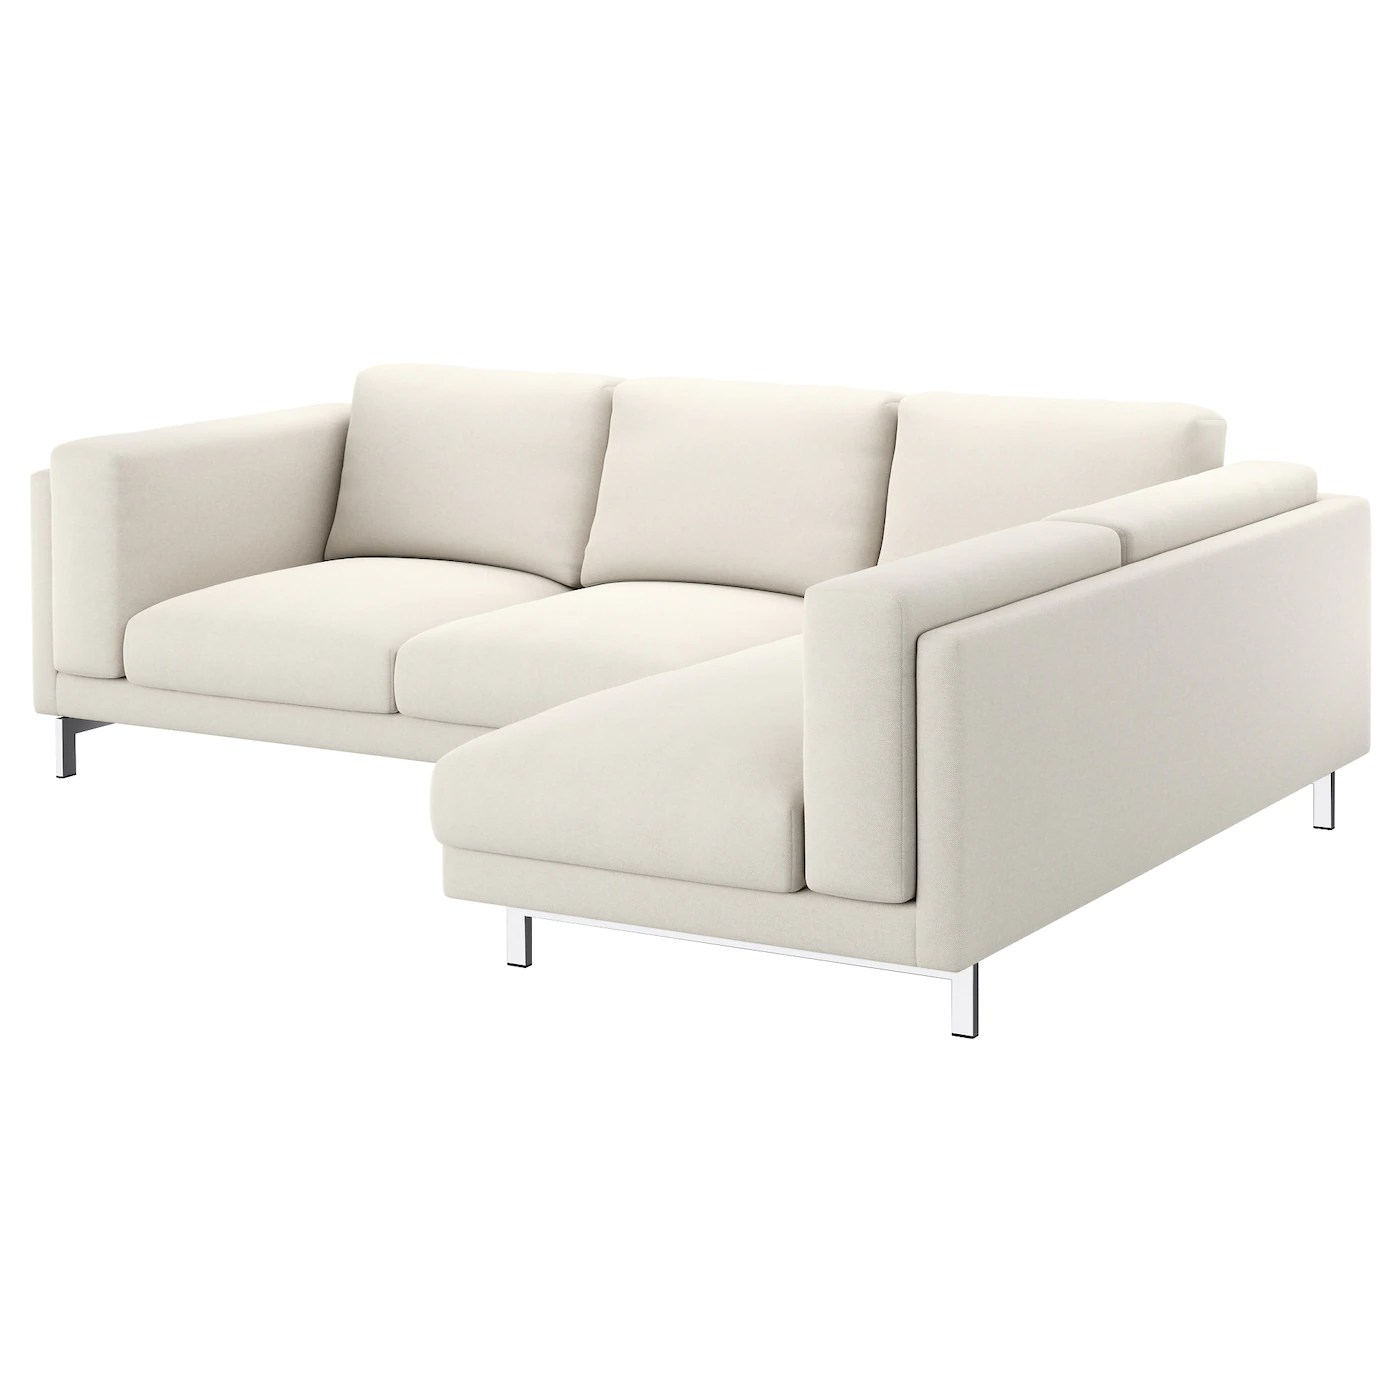 Ikea Sofa Nockeby Test Nockeby Two Seat Sofa W Chaise Longue Right Tallmyra Light